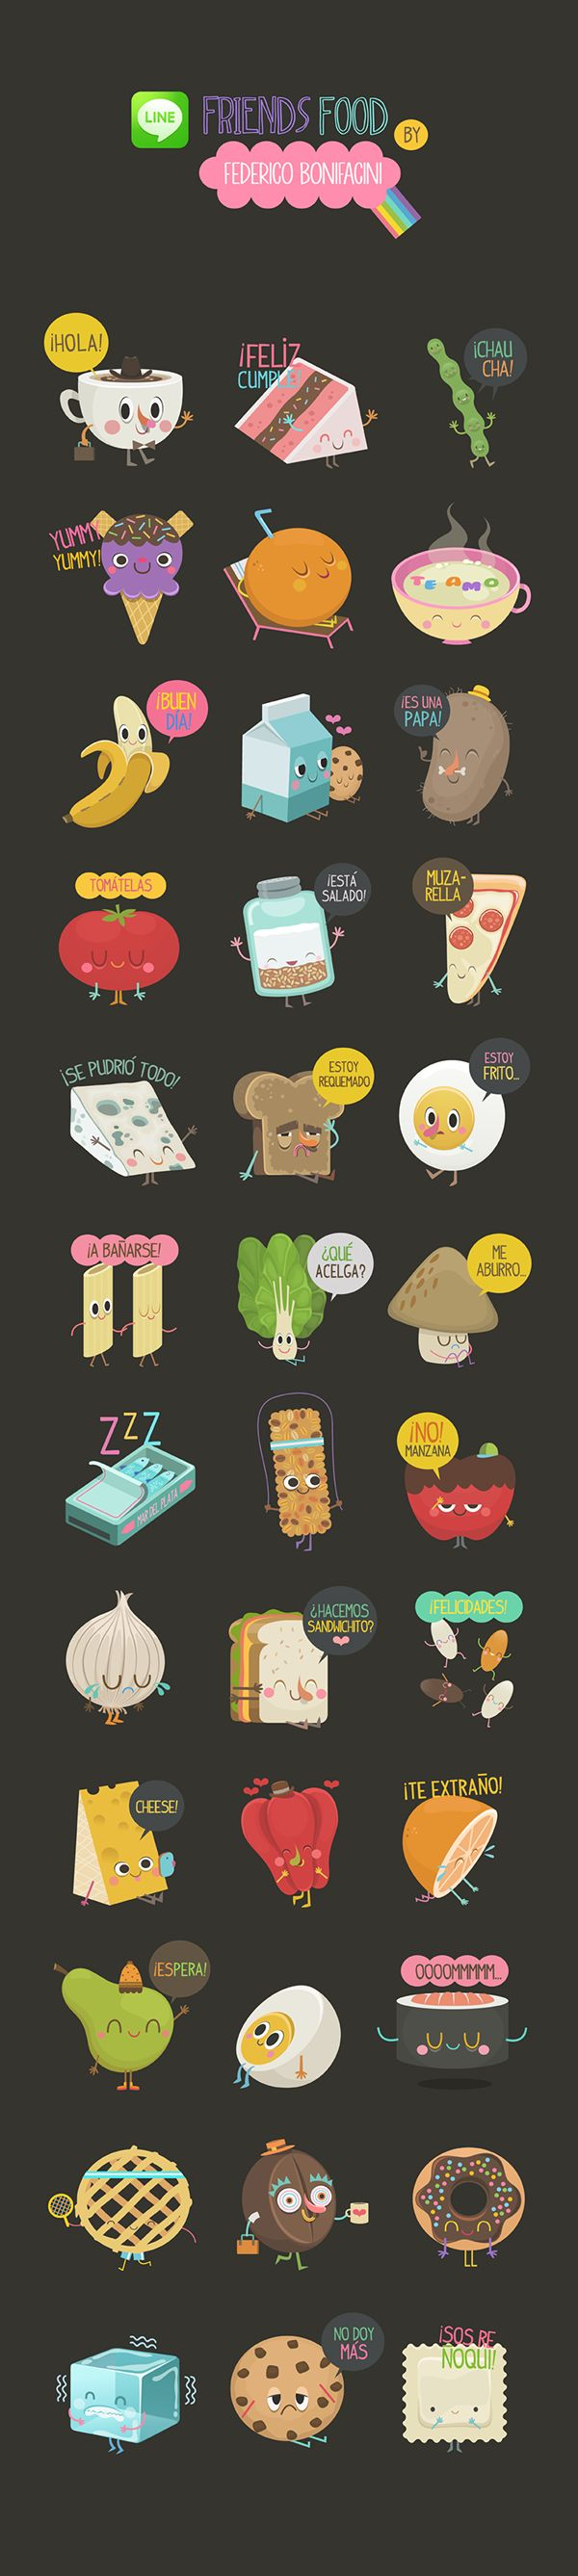 God! So cute! https://www.behance.net/gallery/22587311/FRIENDS-FOOD-Line-Stickers